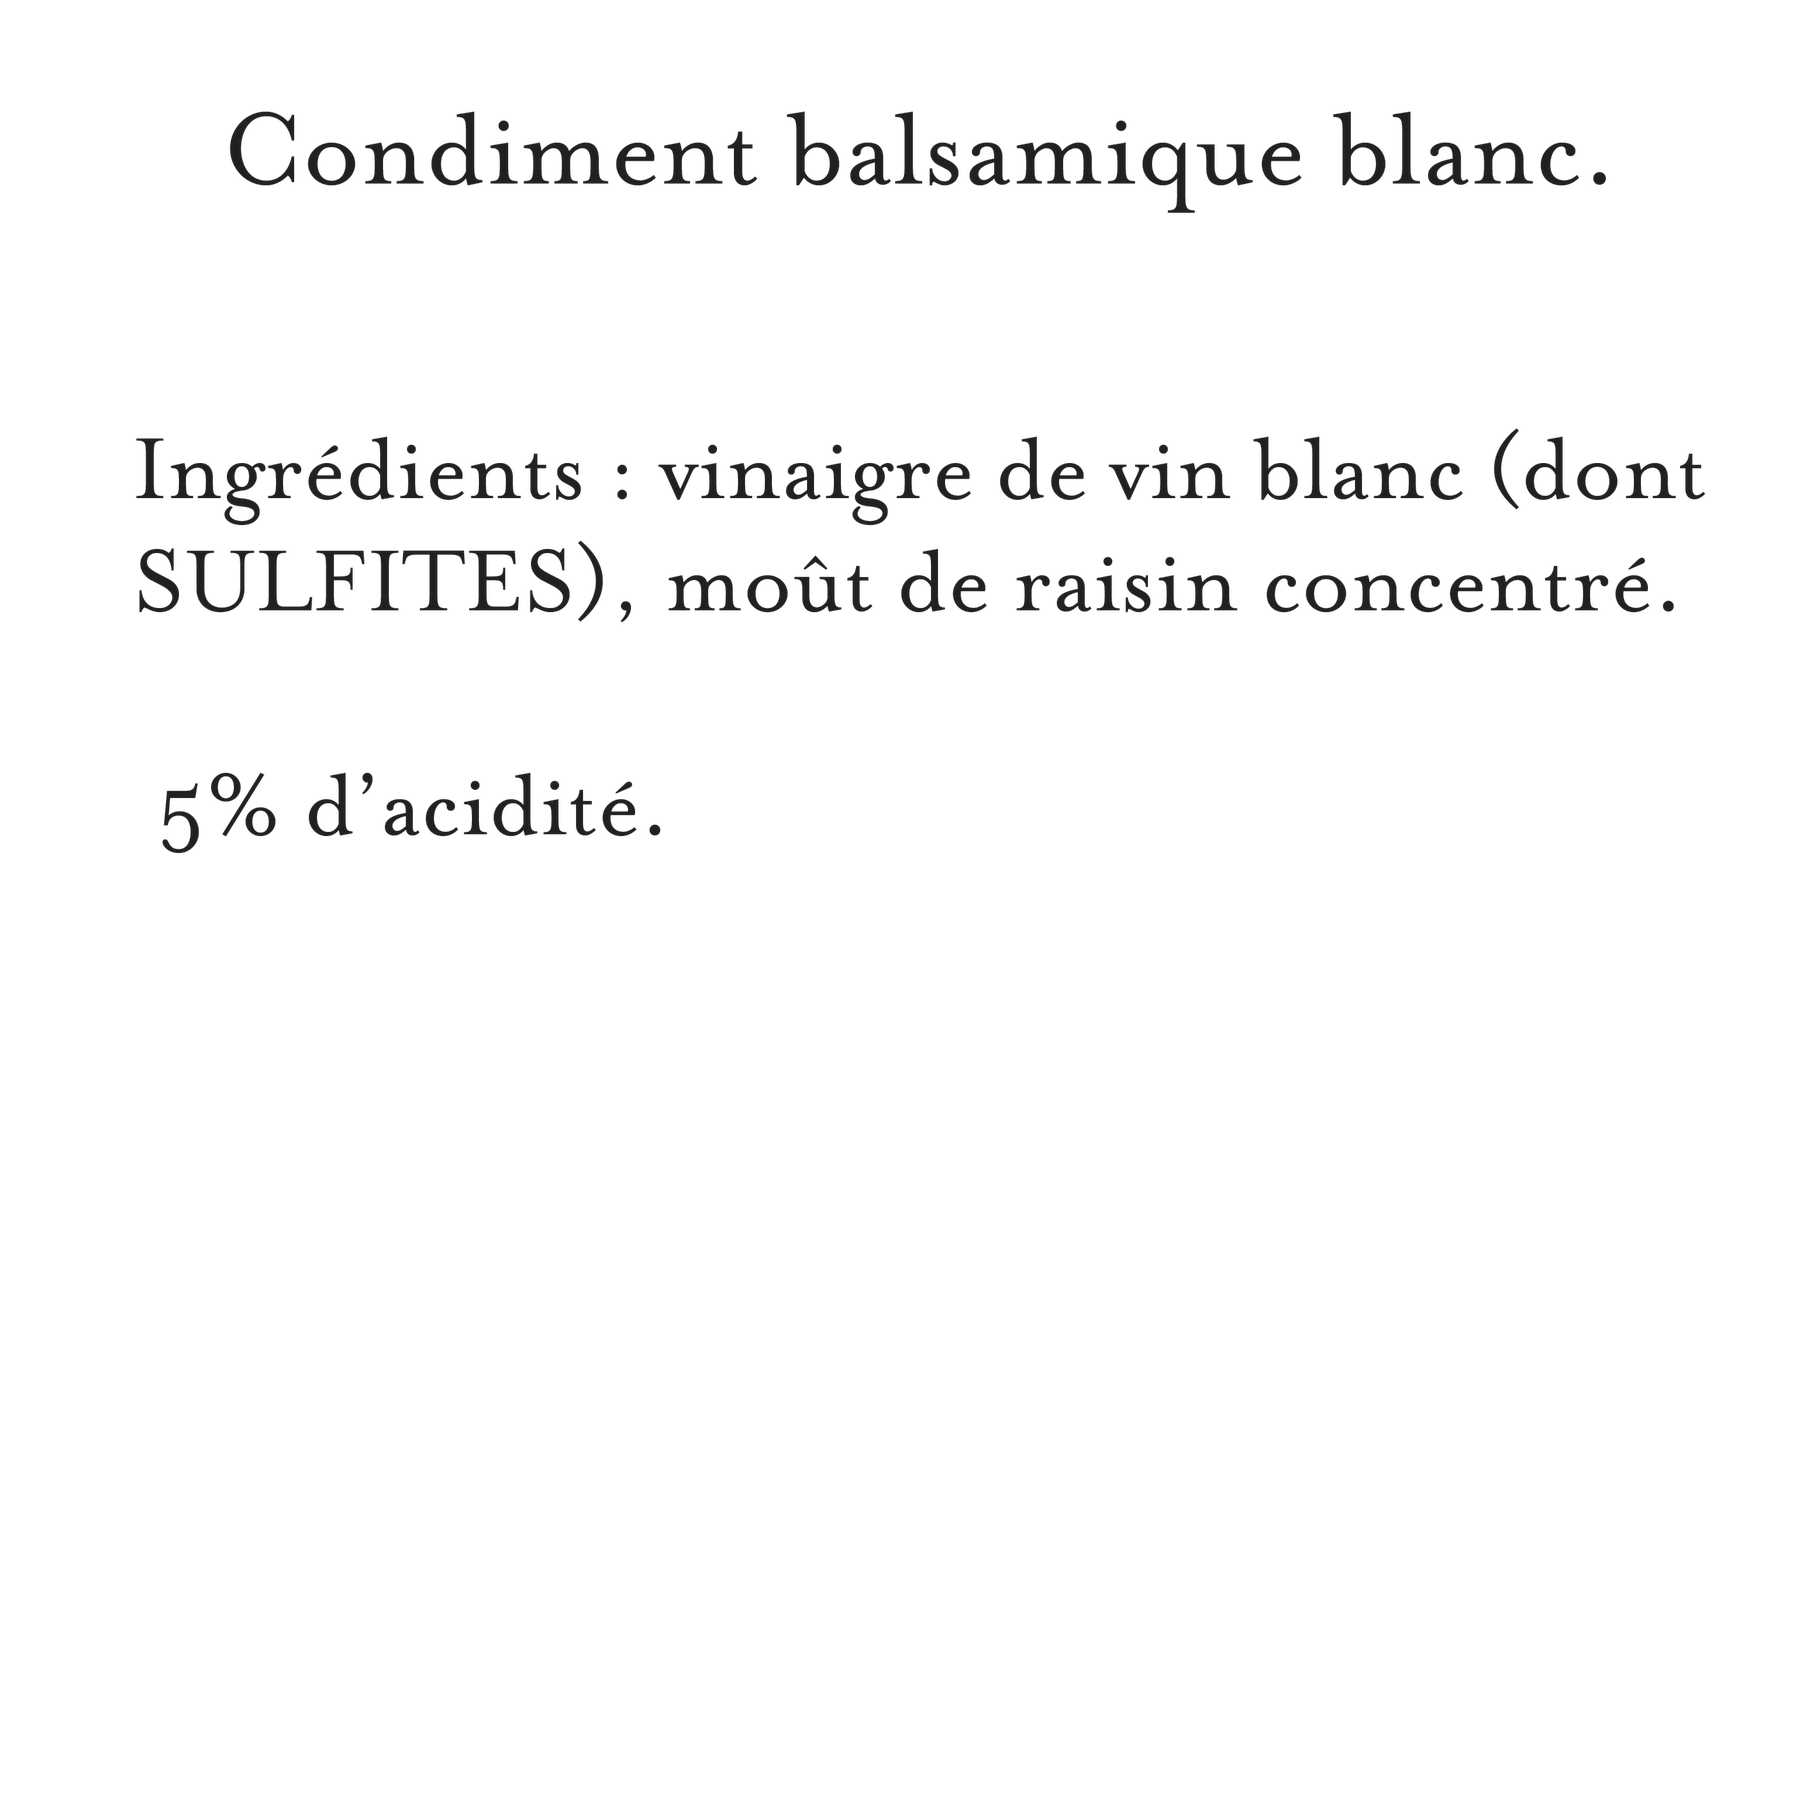 Maille - Condiment balsamique blanc, 250 ml, description